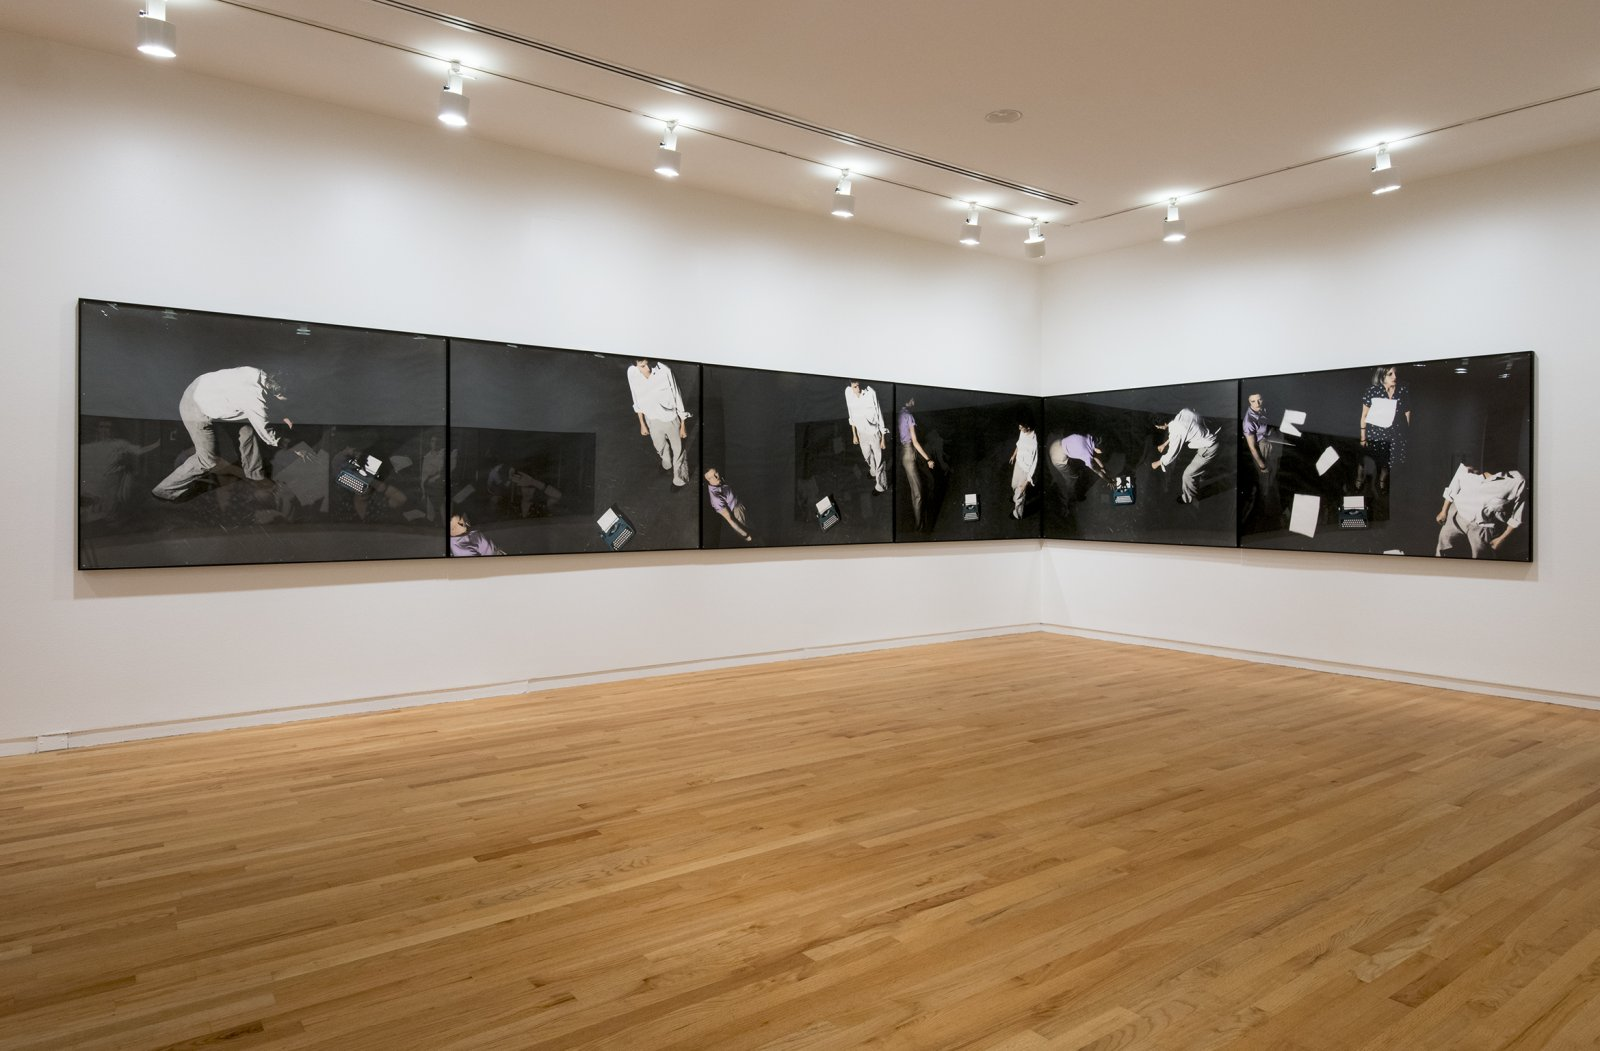 Ian Wallace, An Attack on Literature II, 1975, 12 hand-coloured silver gelatin prints, 49 x 412 in. (124 x 1047 cm). Installation view, A Literature of Images, Vancouver Art Gallery, 2012 by Ian Wallace